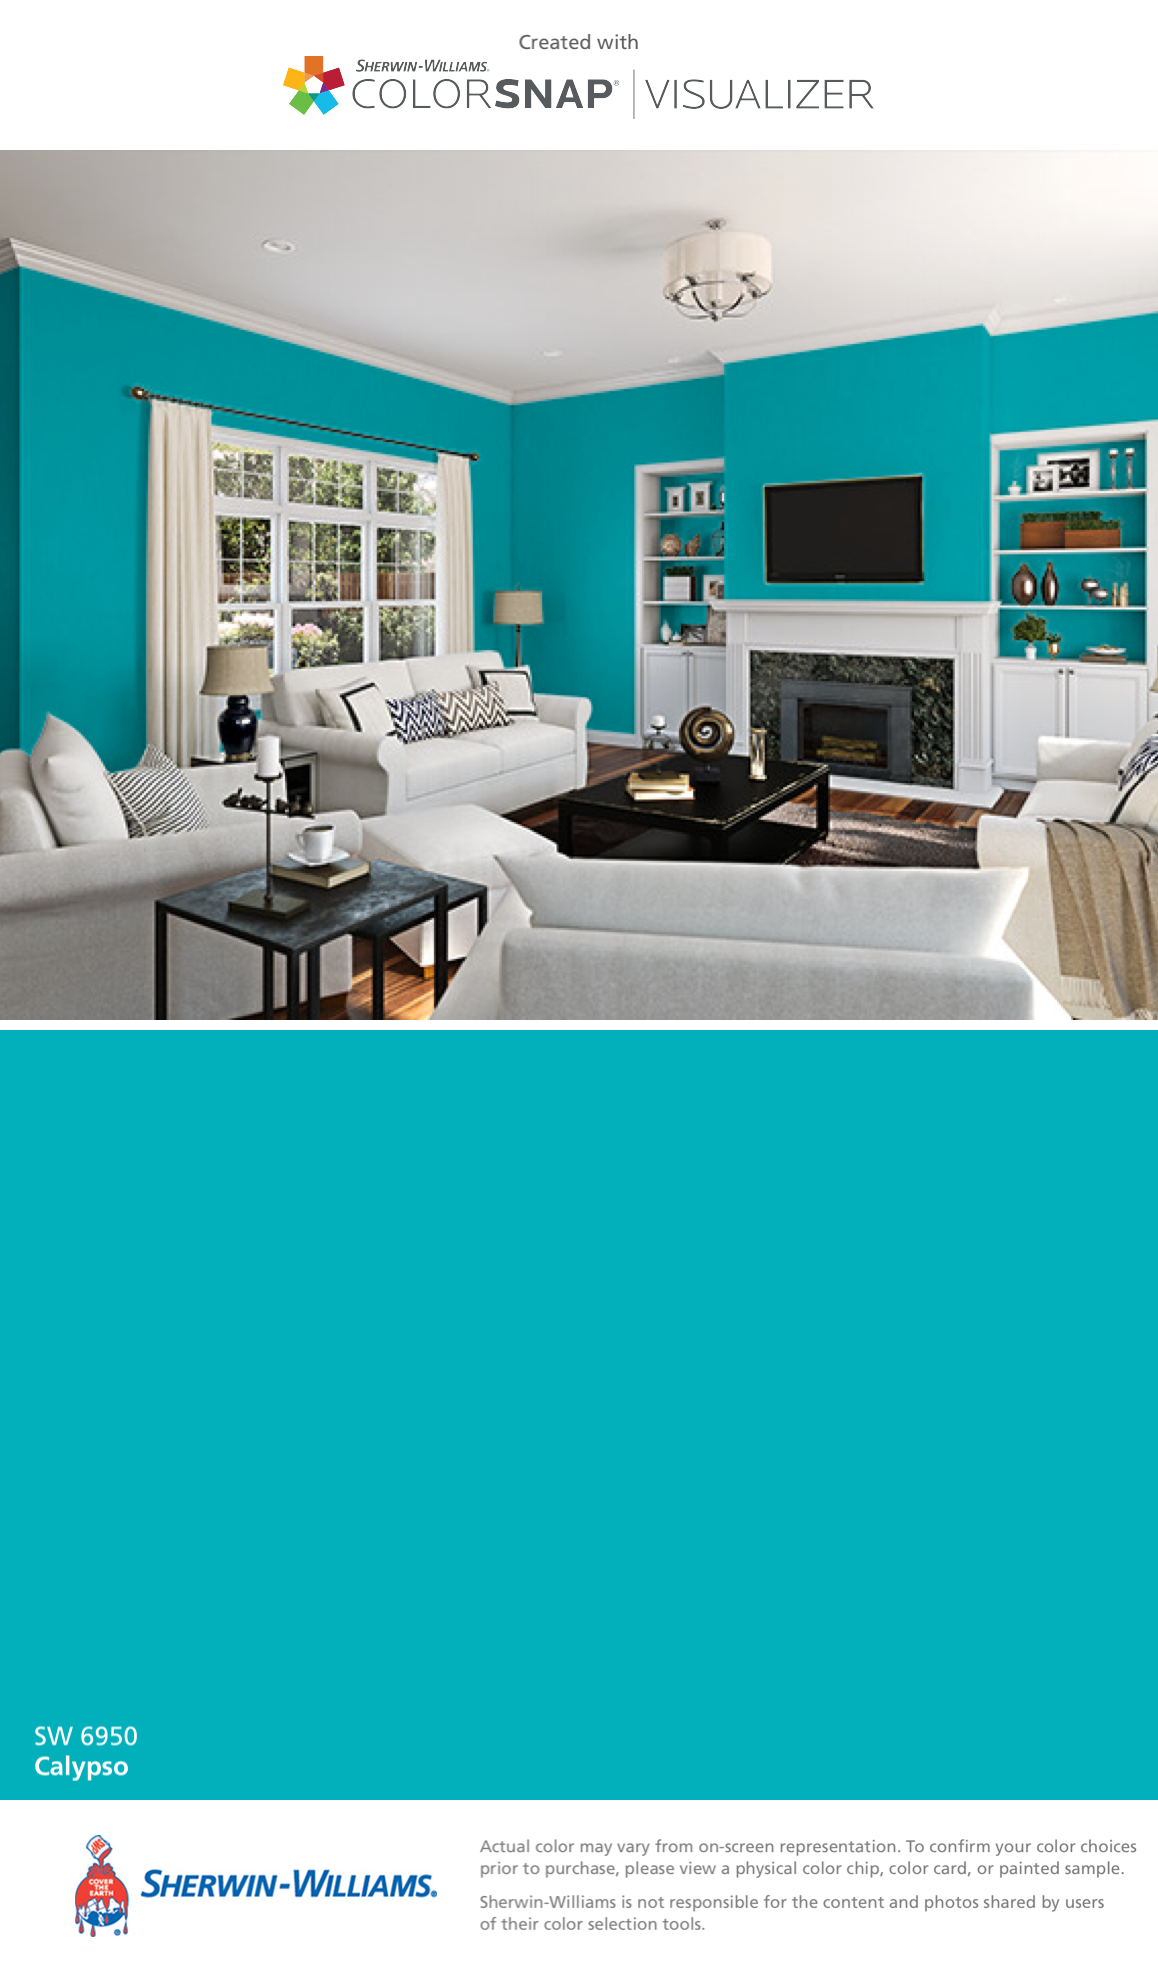 Sherwin Williams Calypso : sherwin, williams, calypso, Found, Color, ColorSnap®, Visualizer, IPhone, Sherwin-Williams:, Calypso, 6950)., Paint, Colors, Home,, Colors,, Matching